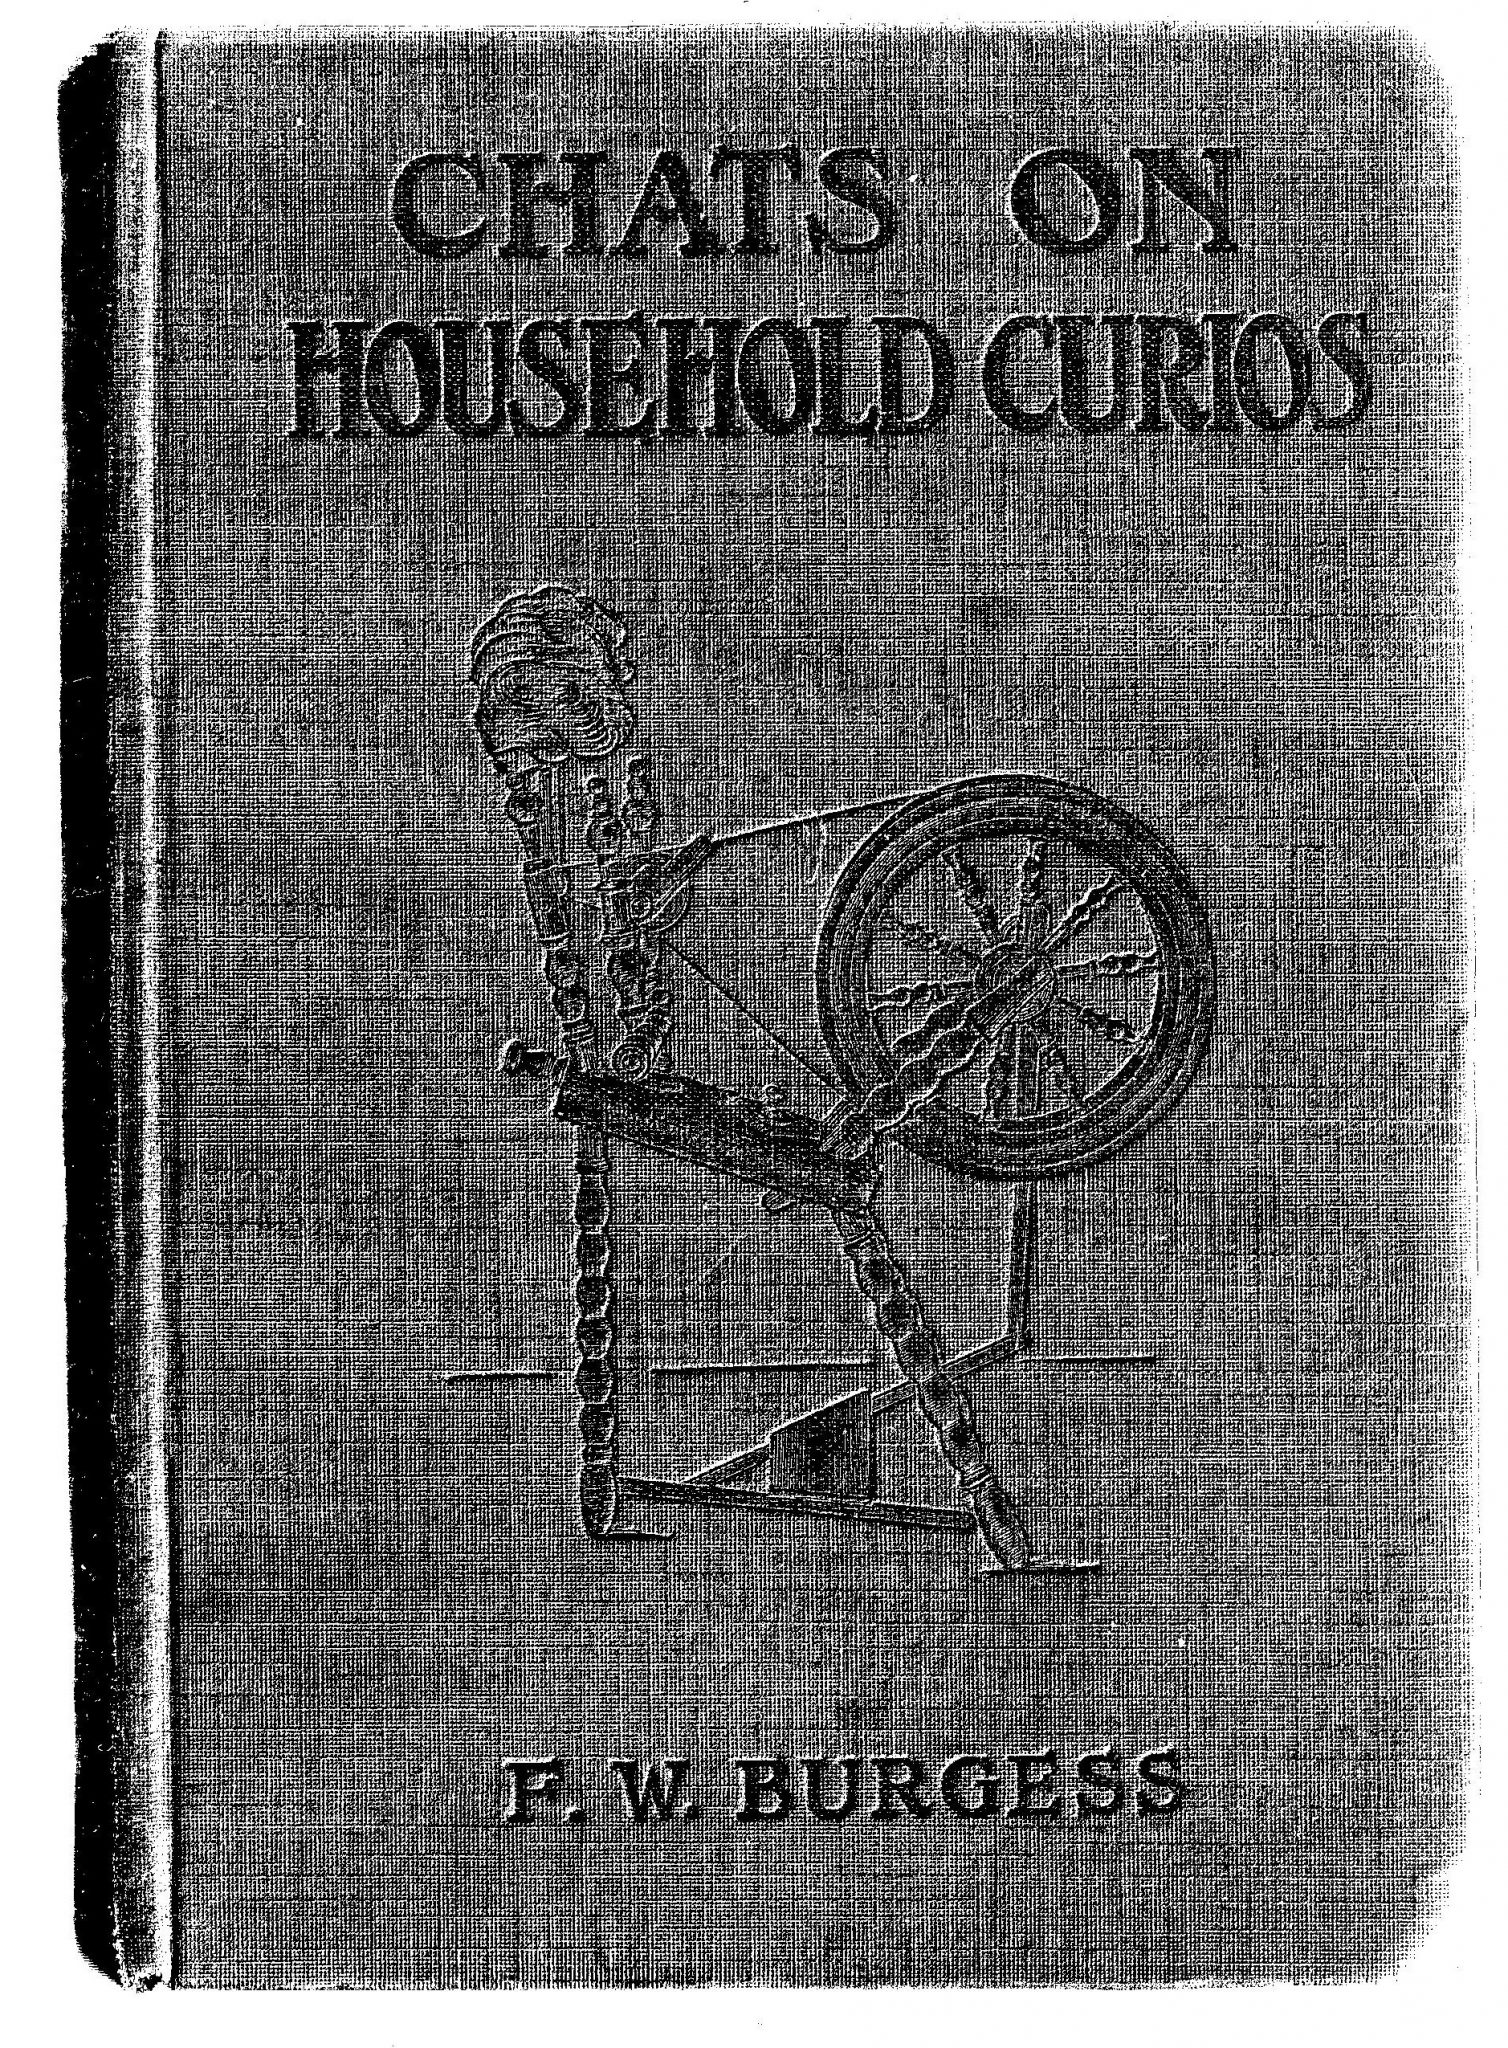 Chats on Household Curios PSL/1914/0006b 1